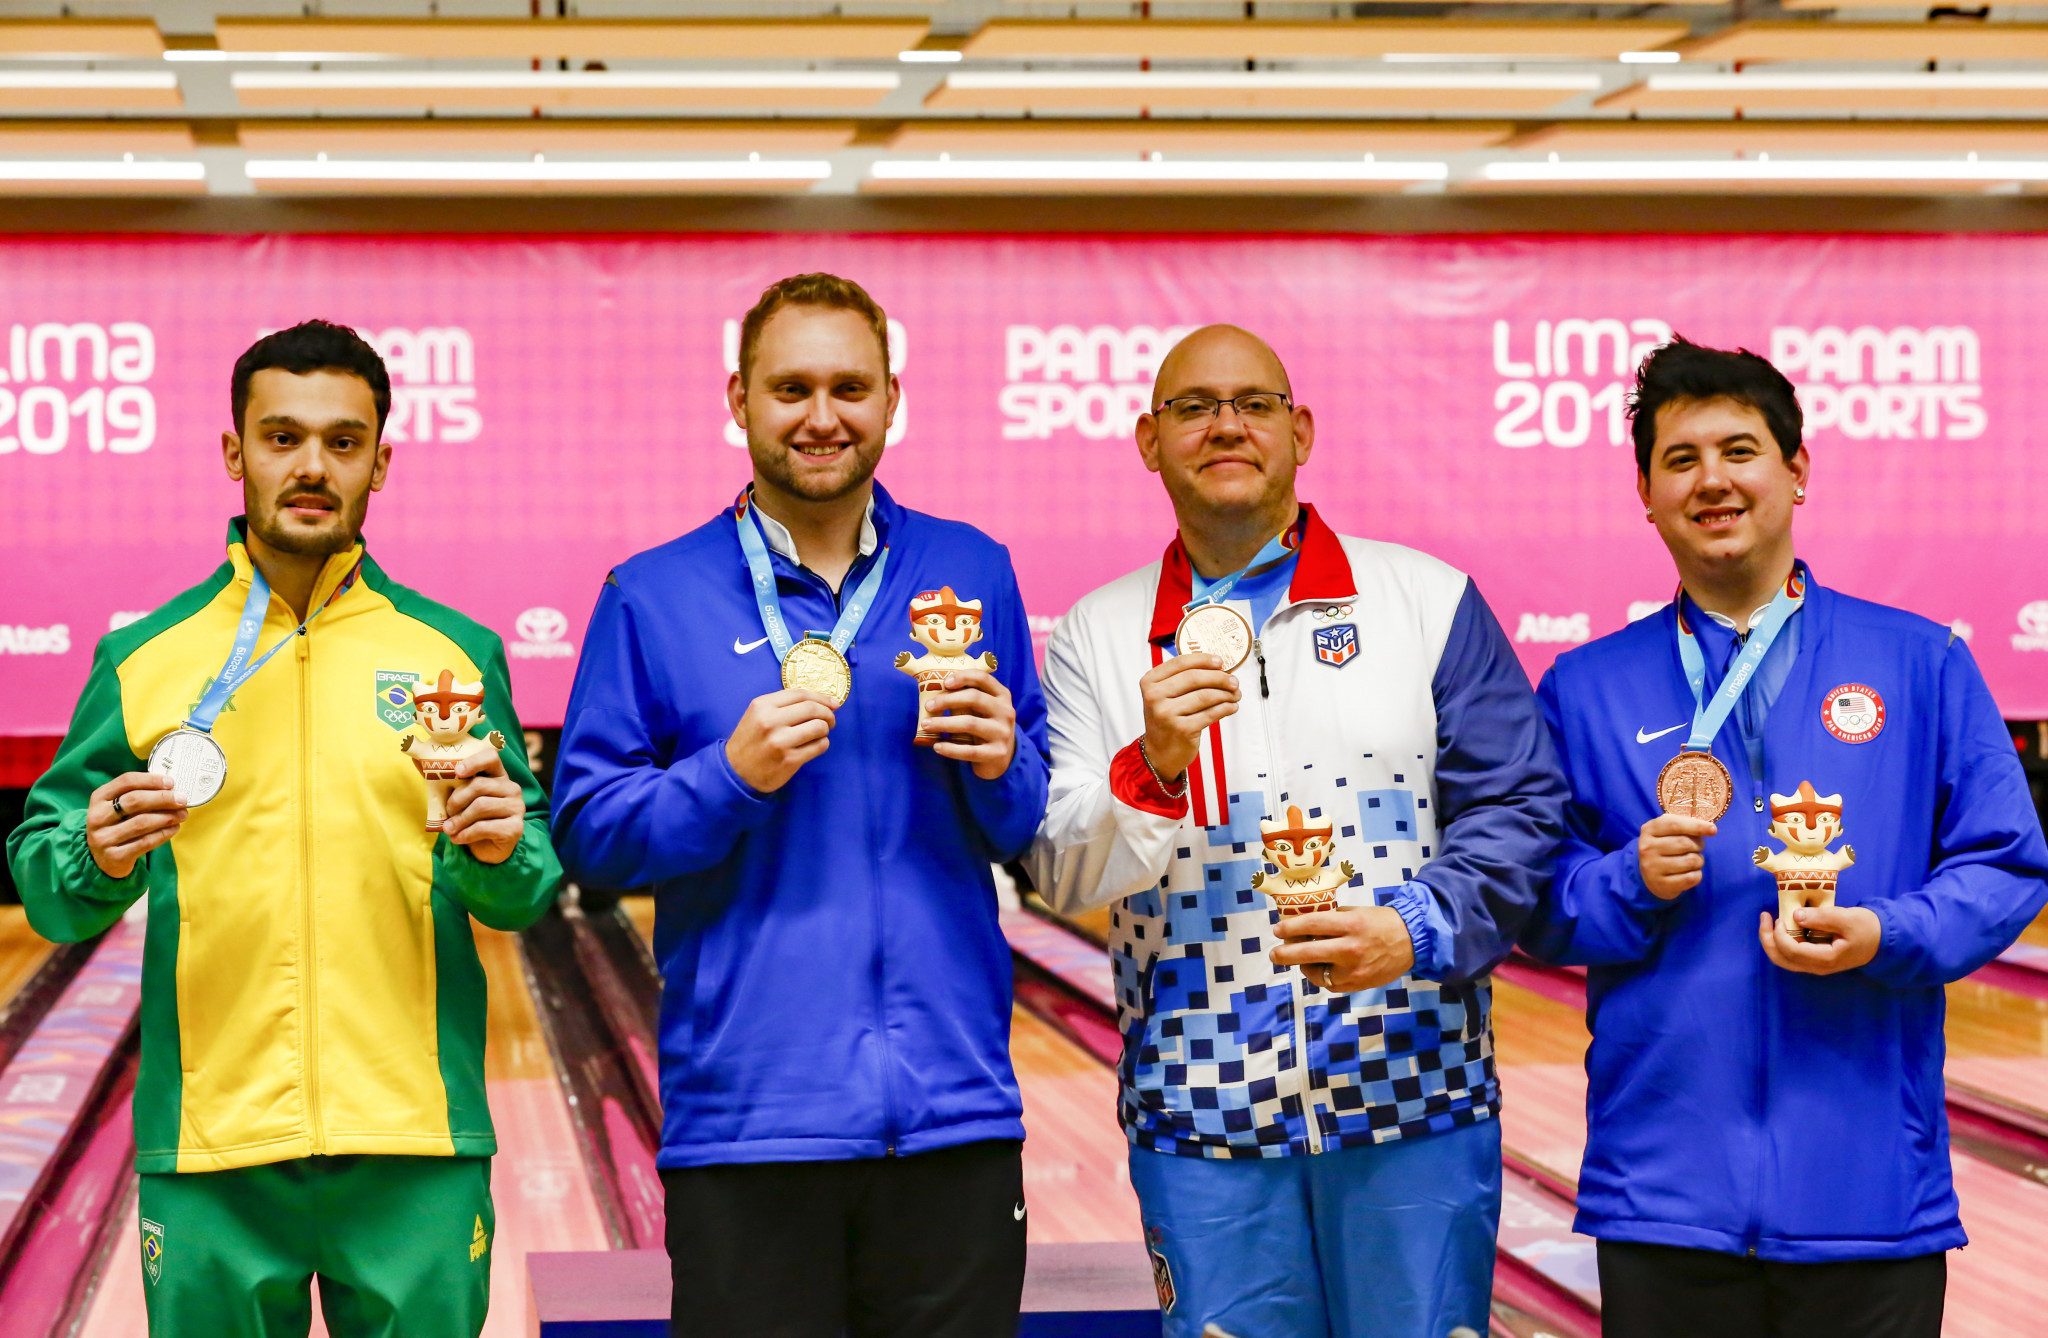 Jean Perez, third left, is expected to keep his singles bronze medal ©Getty Images